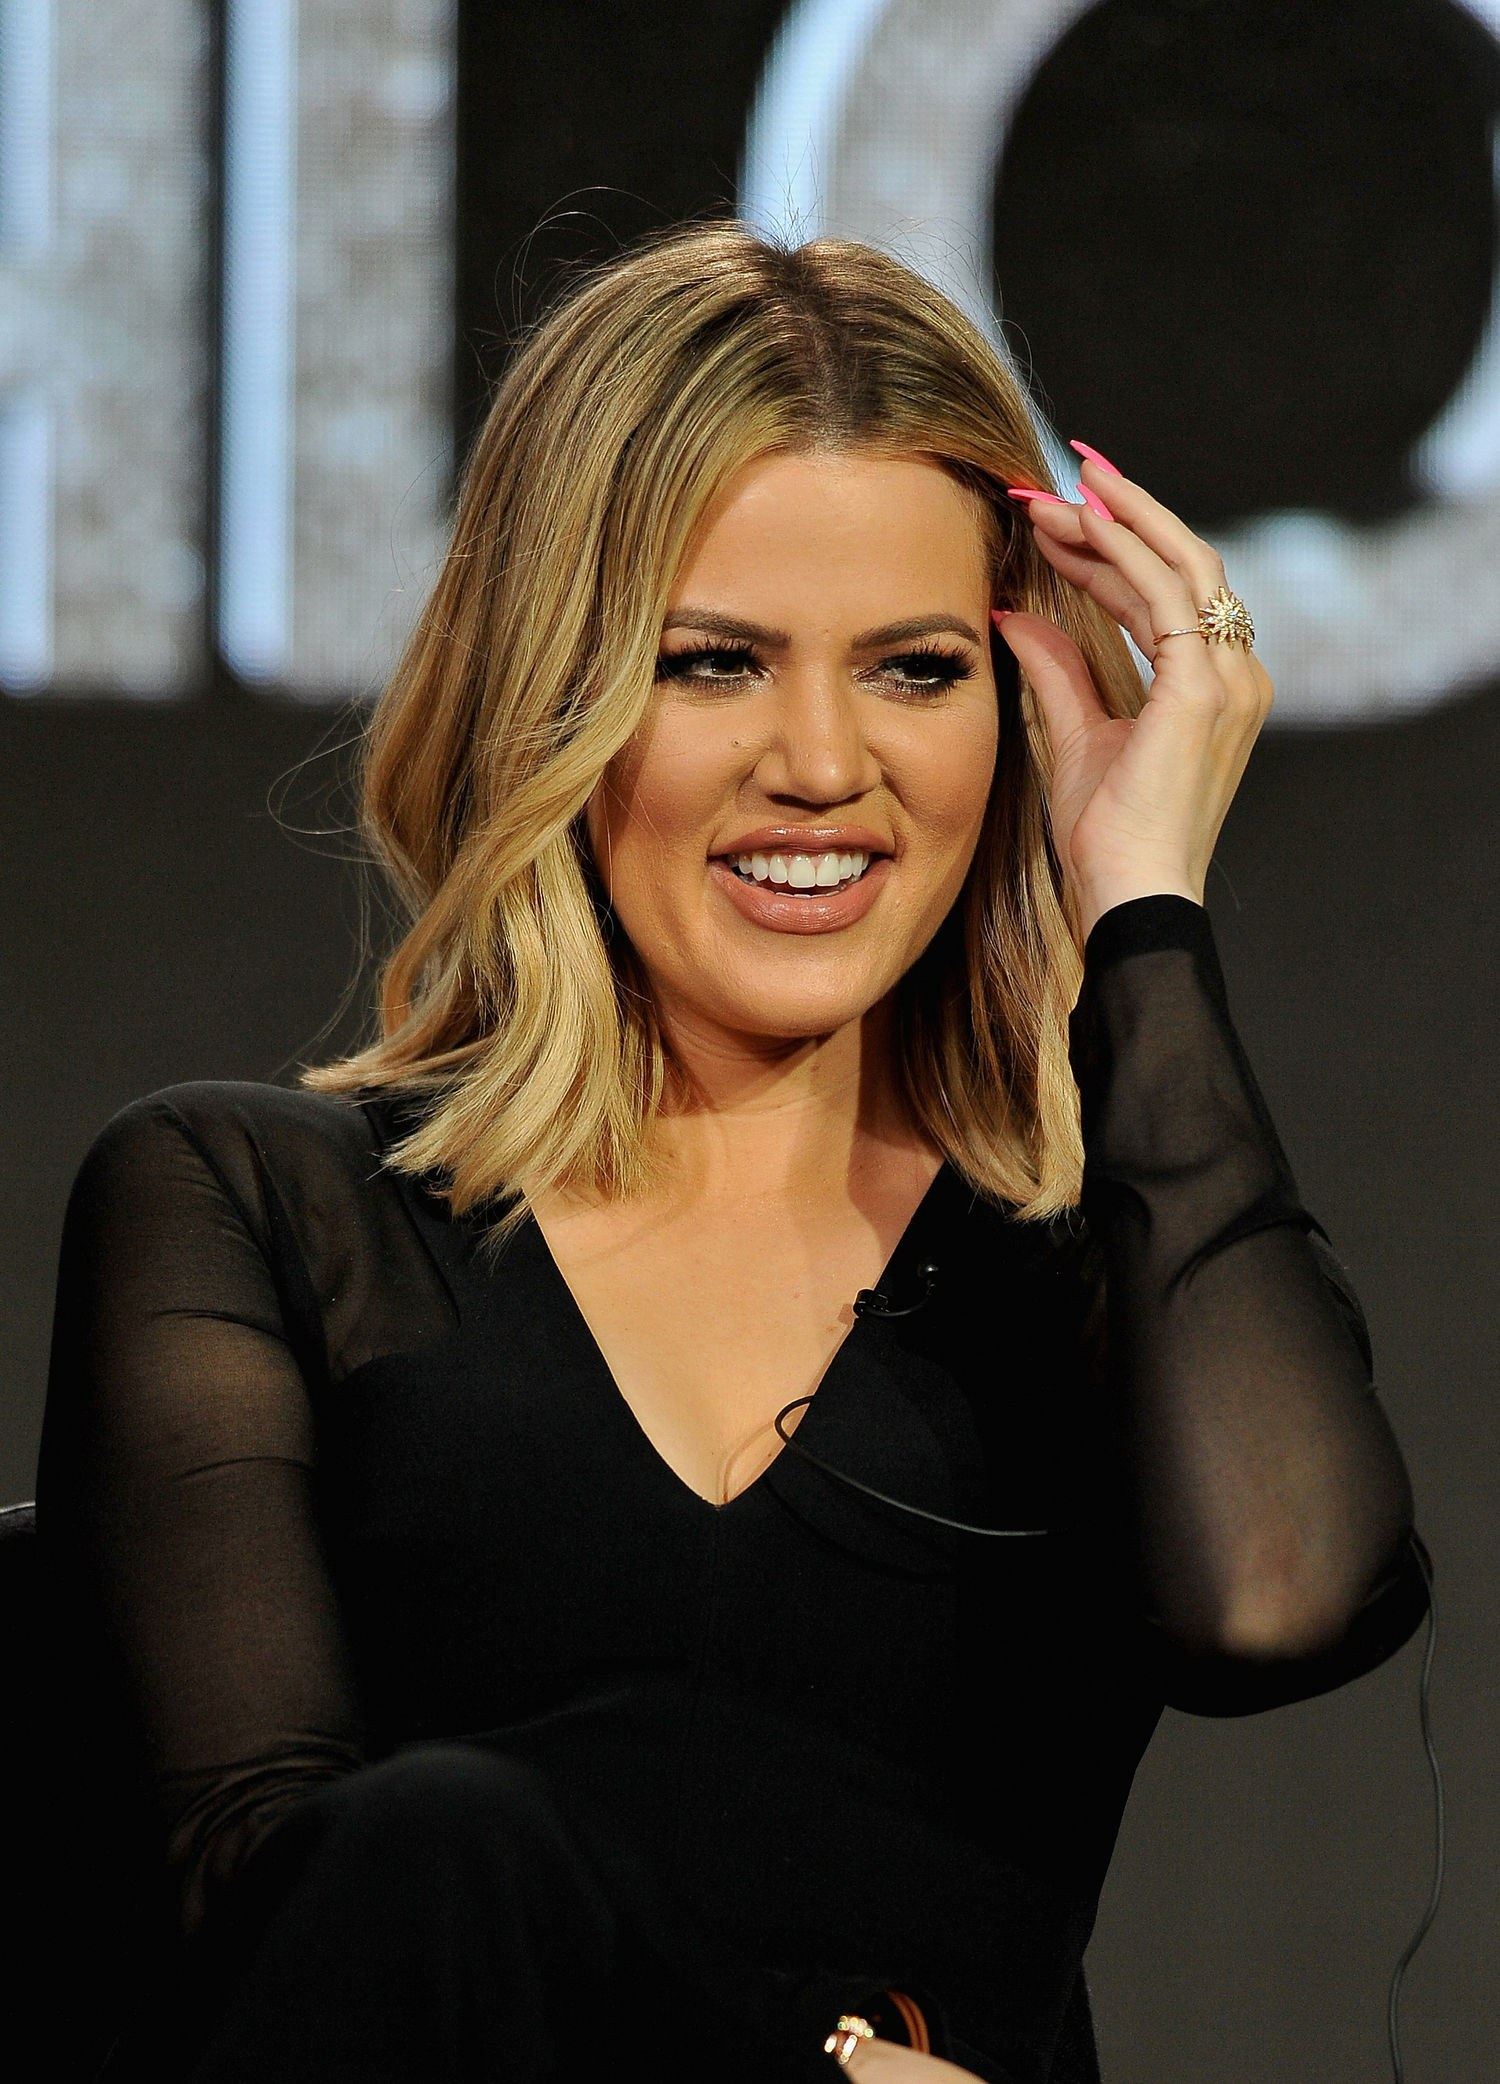 khloe kardashian - photo #7